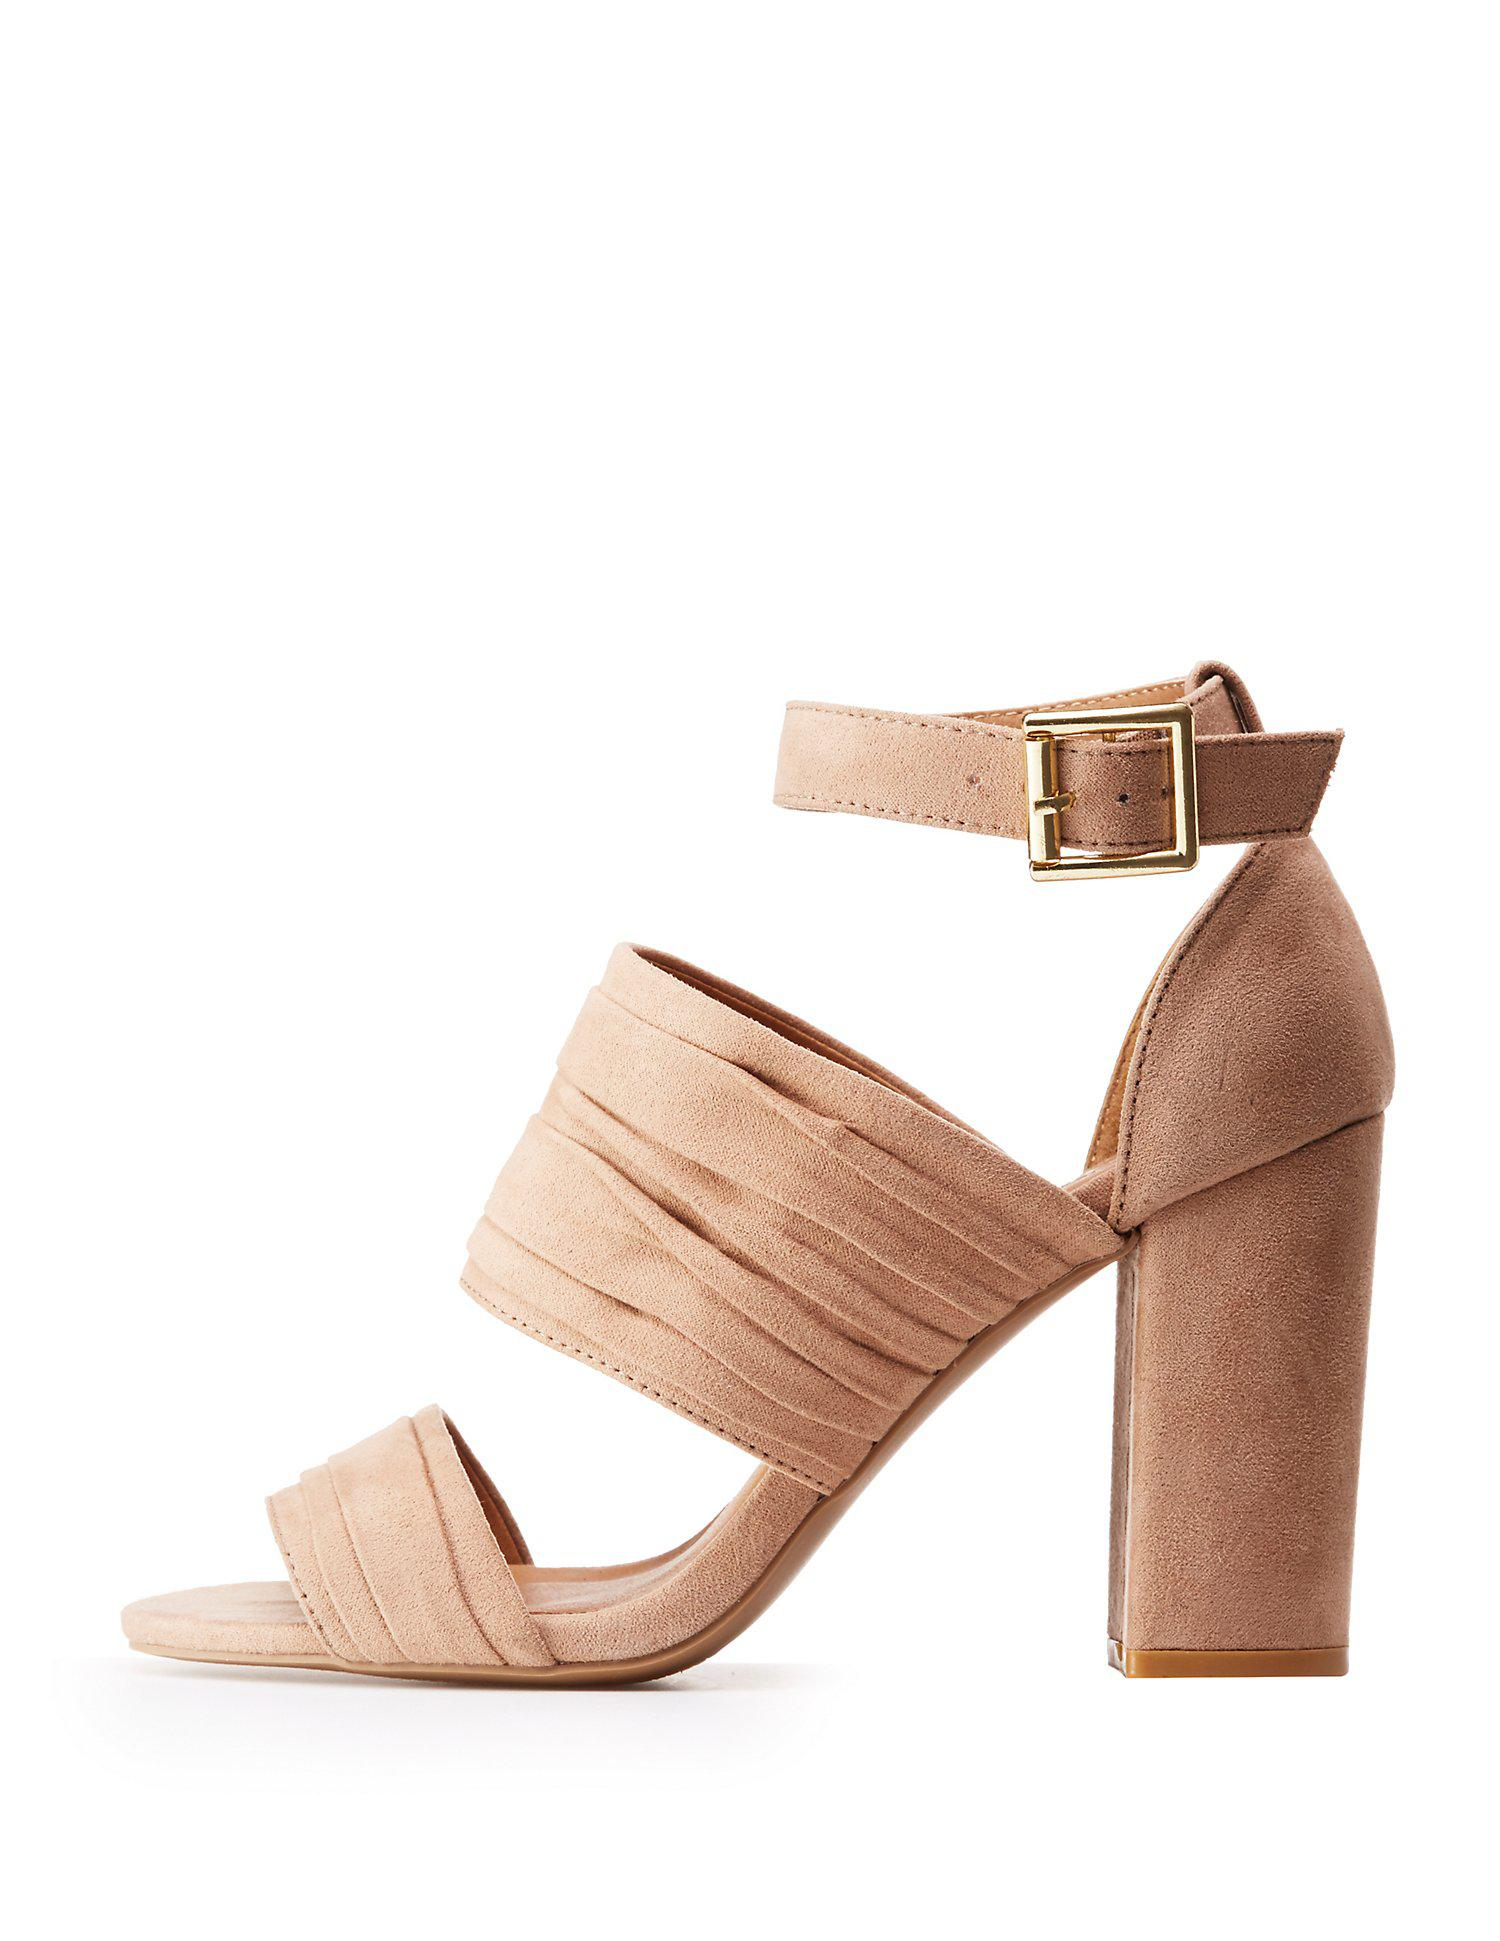 88d0e8066deb Lyst - Charlotte Russe Ruched Ankle Wrap Sandals